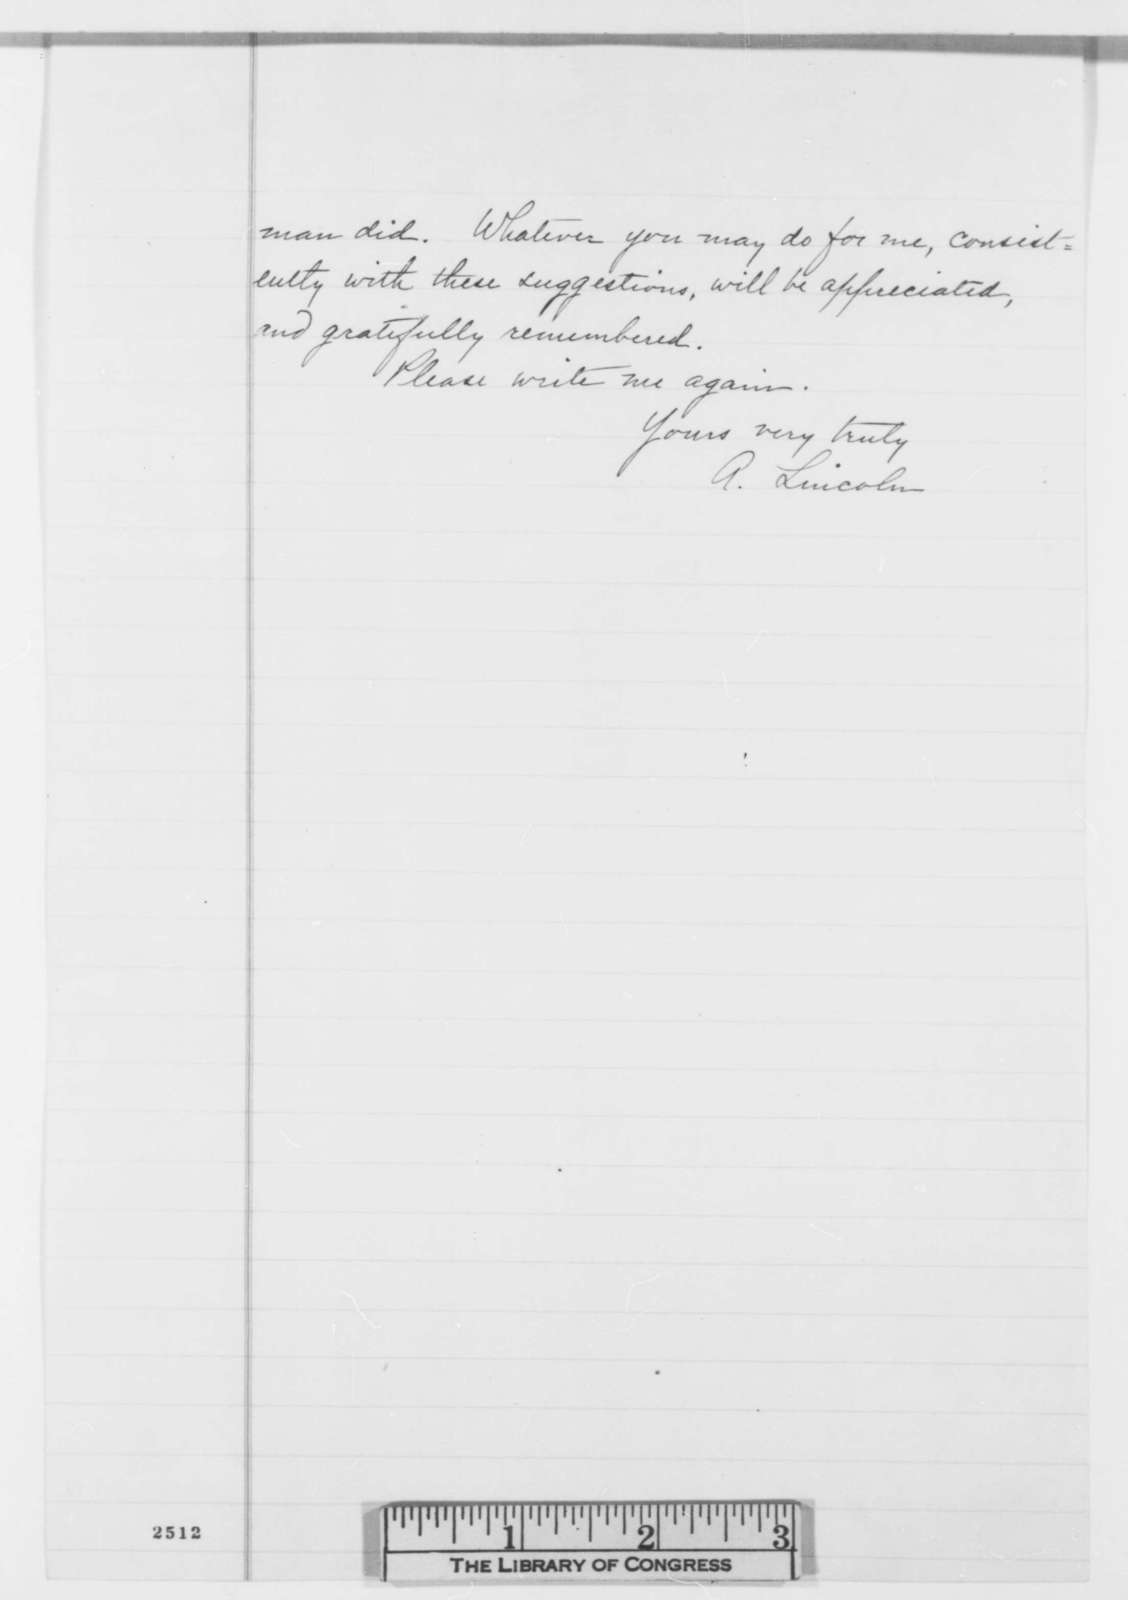 abraham lincoln to samuel galloway saturday march 24 1860